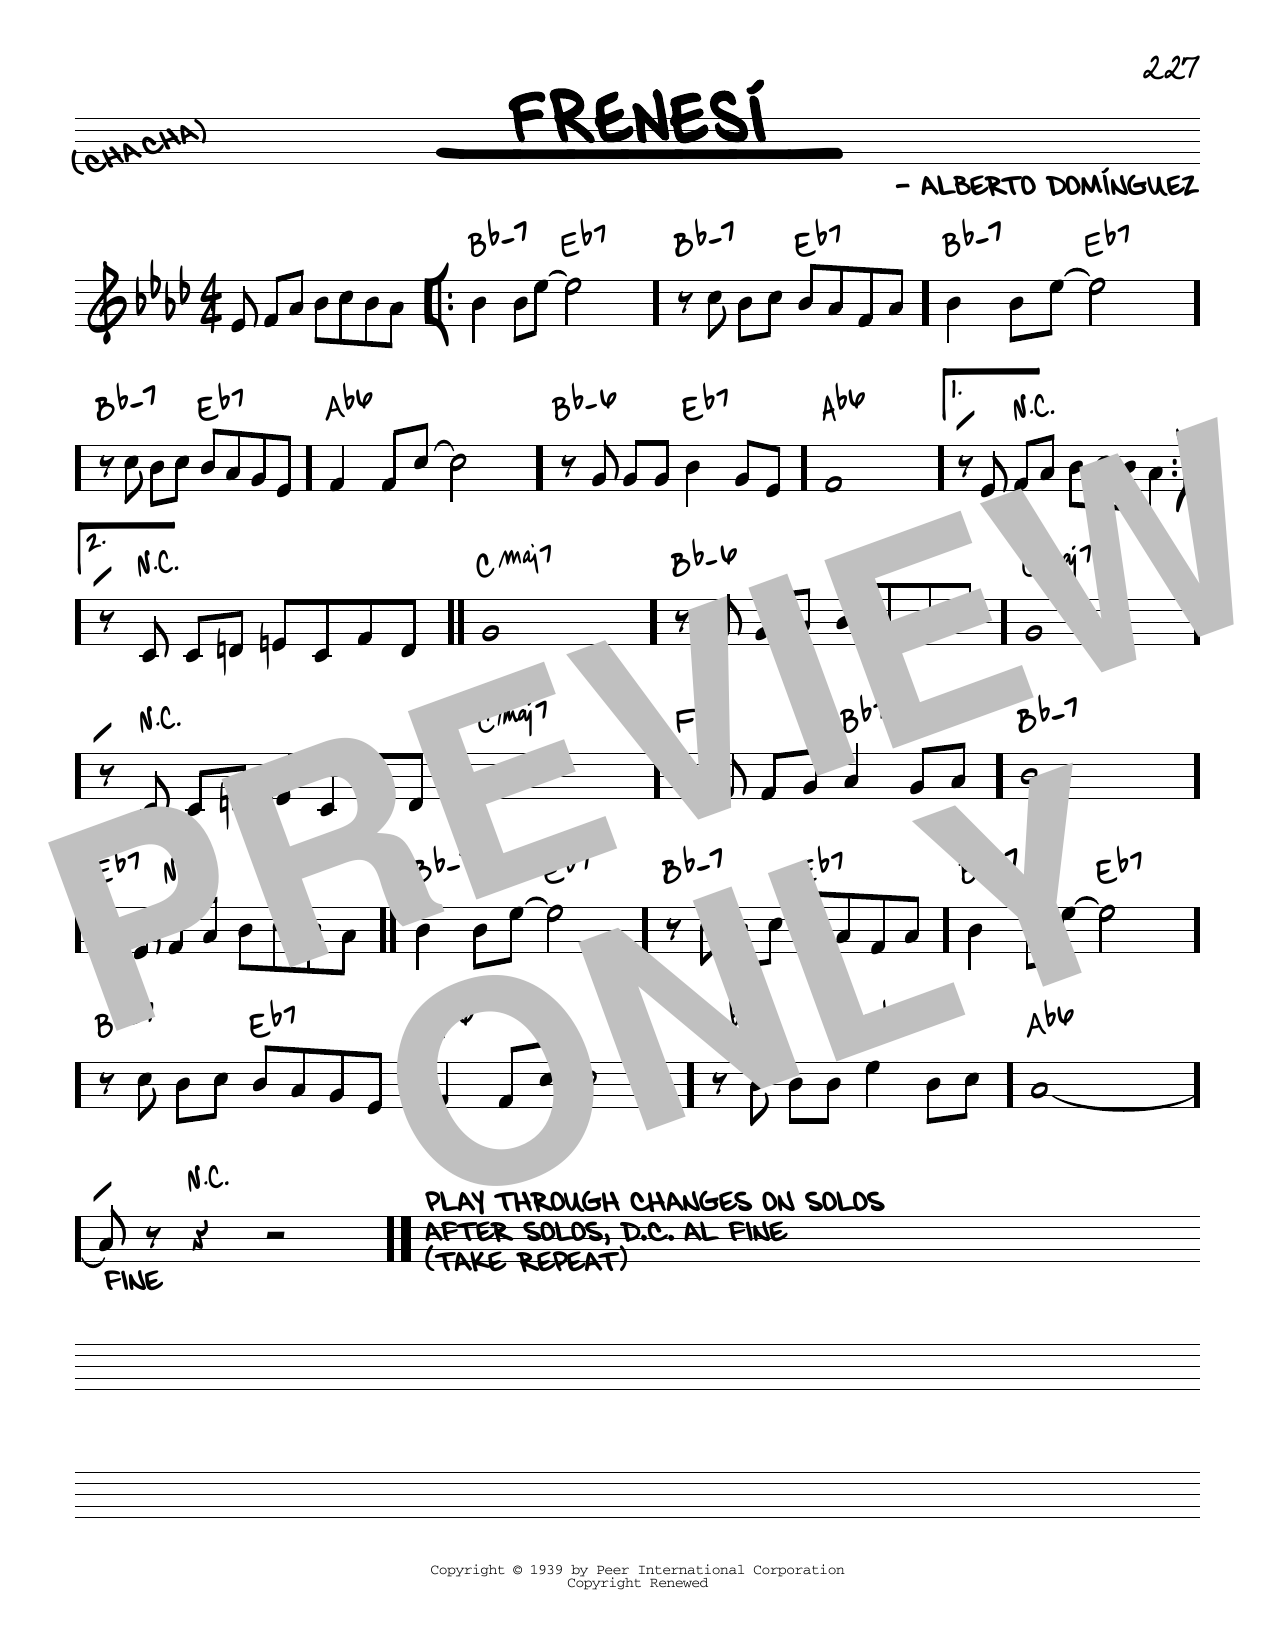 Frenesi sheet music for voice and other instruments (C) by Alberto Dominguez